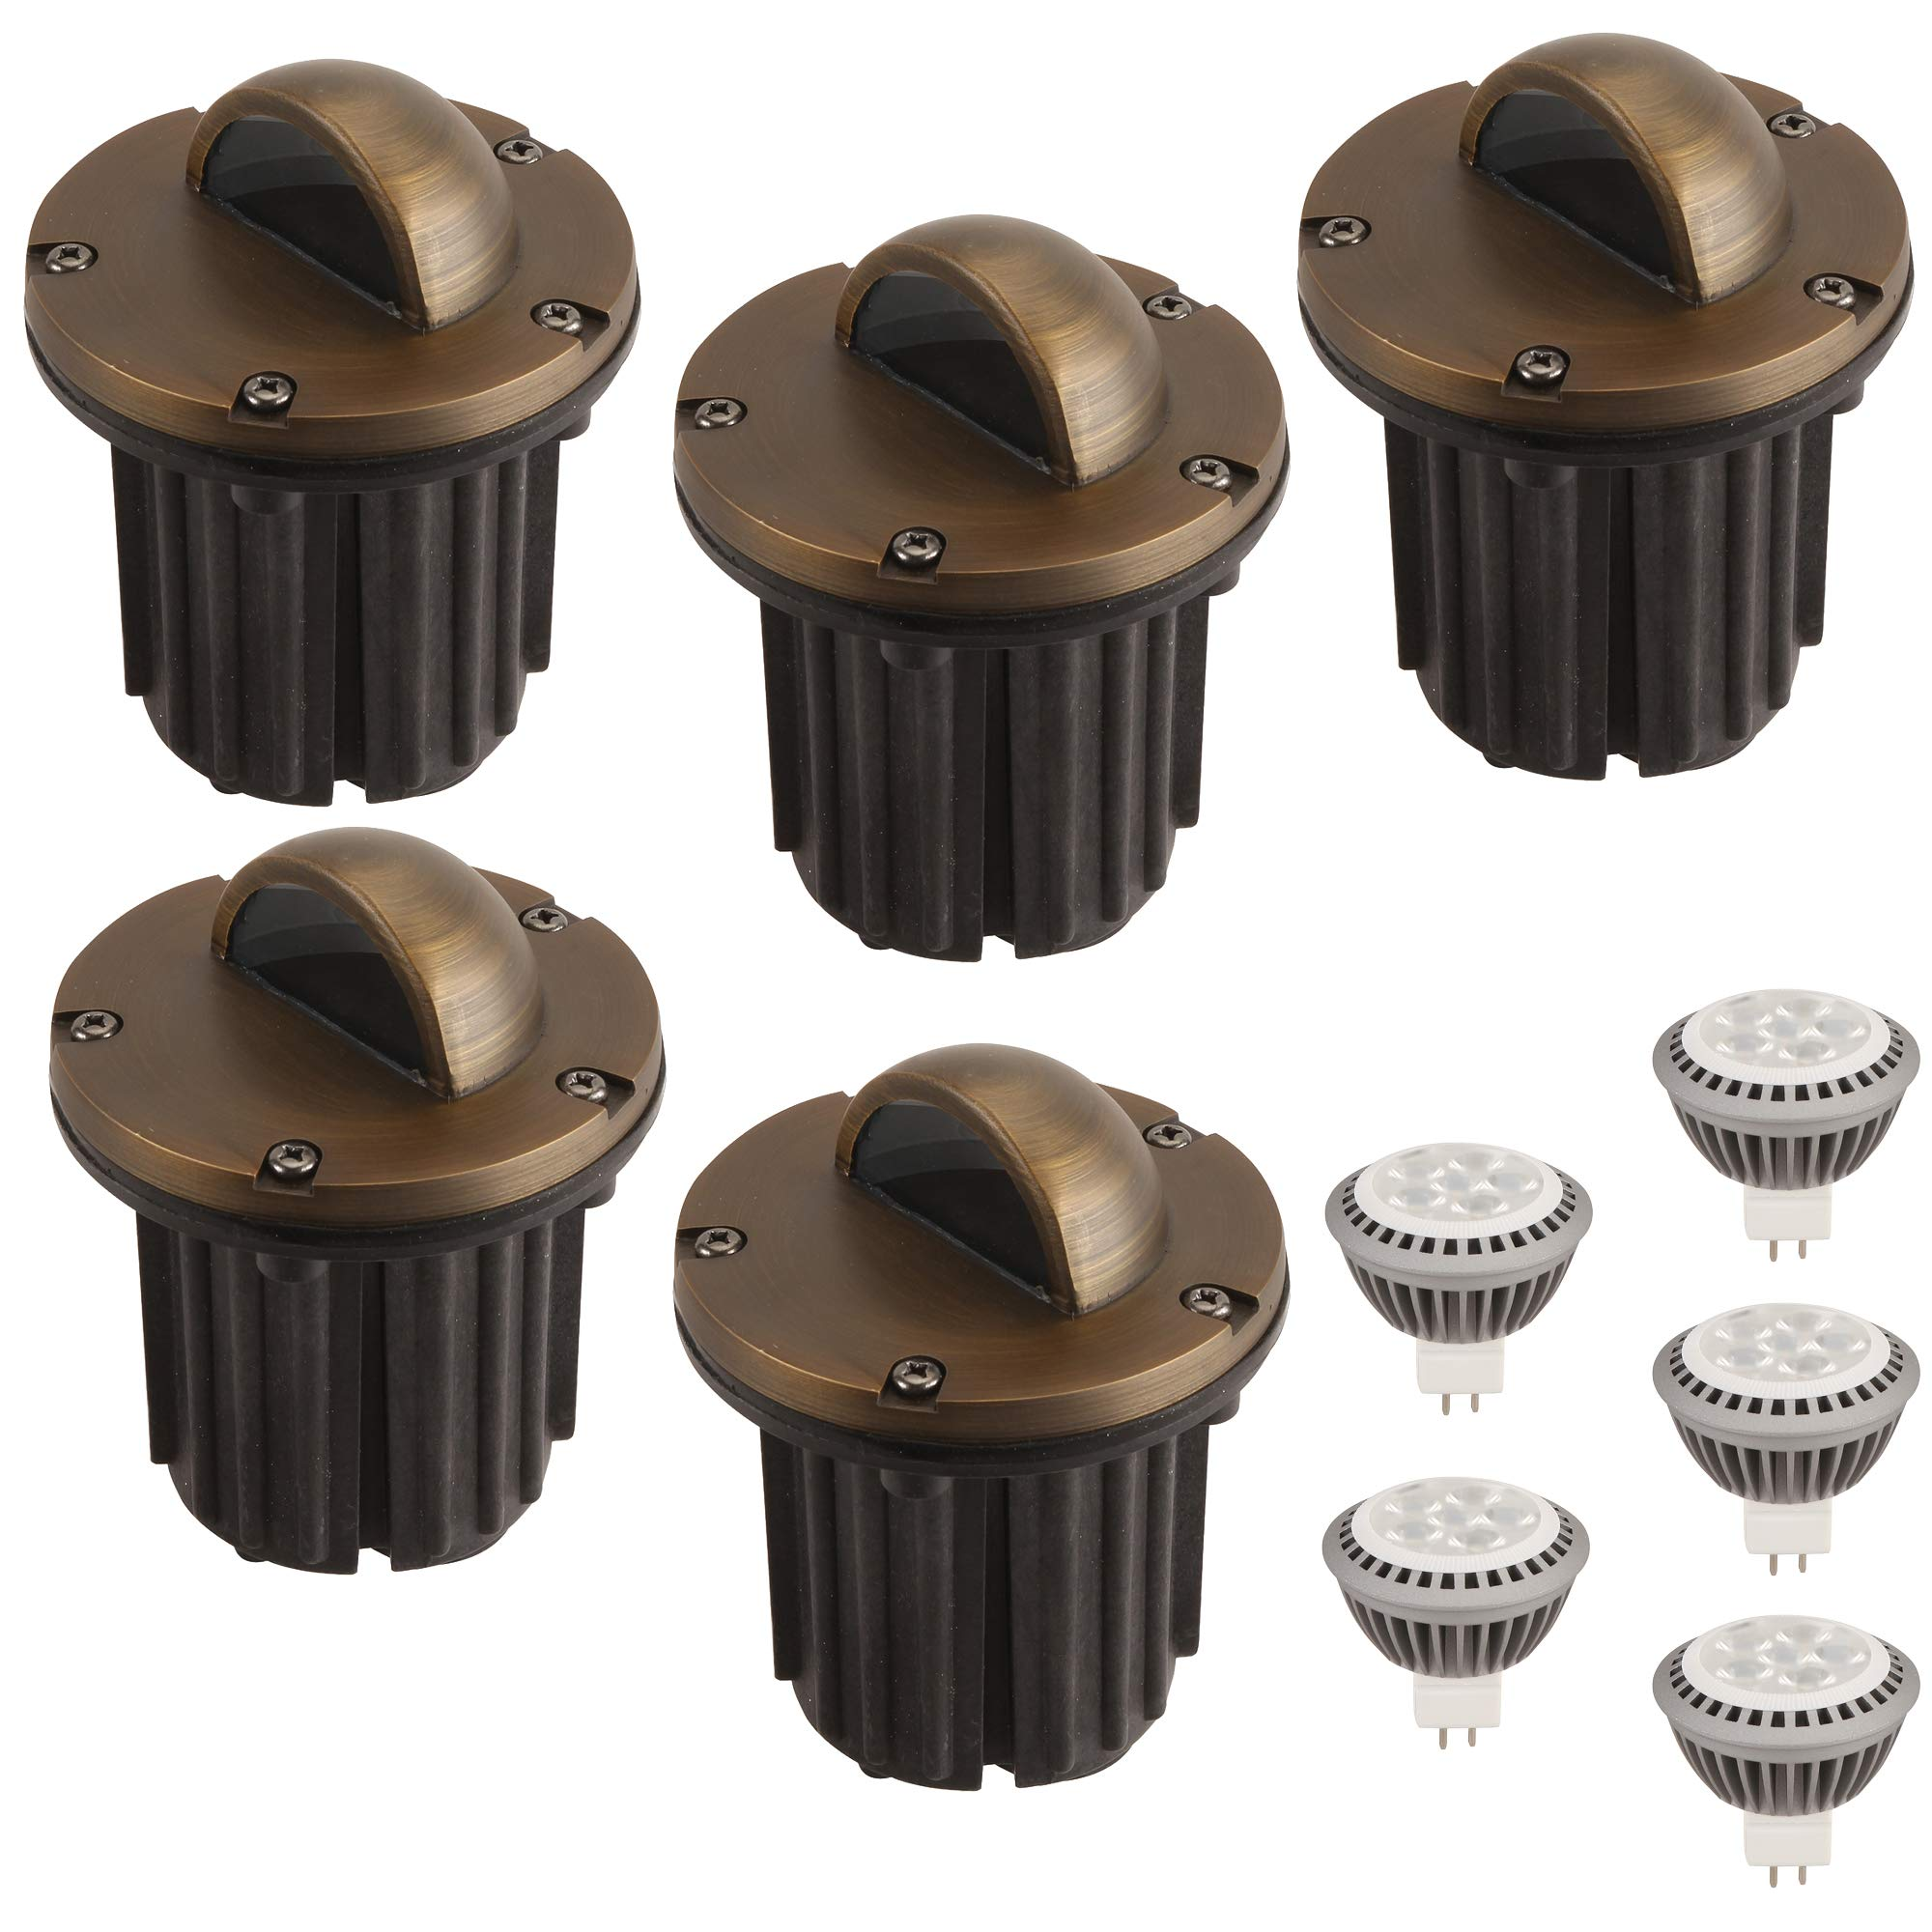 LFU Pack of 5 Solid Brass Constructed Well/In Ground Lights with 5 LED MR16 3W Warm White Bulbs. Model LF3004AB Vienna. Low Voltage. by Lighting Factory USA